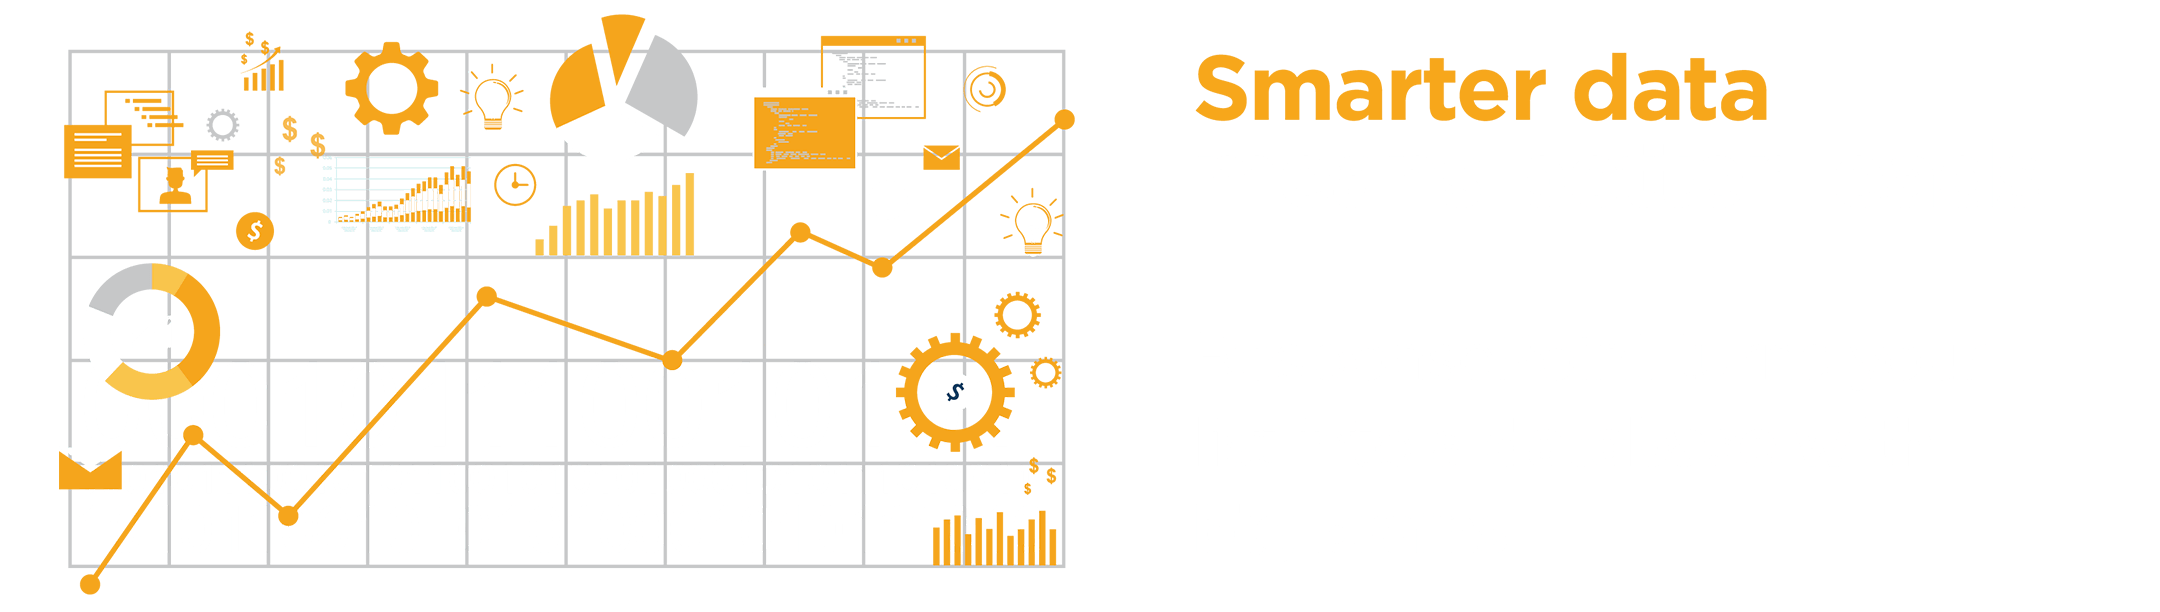 Smarter data means better leads.